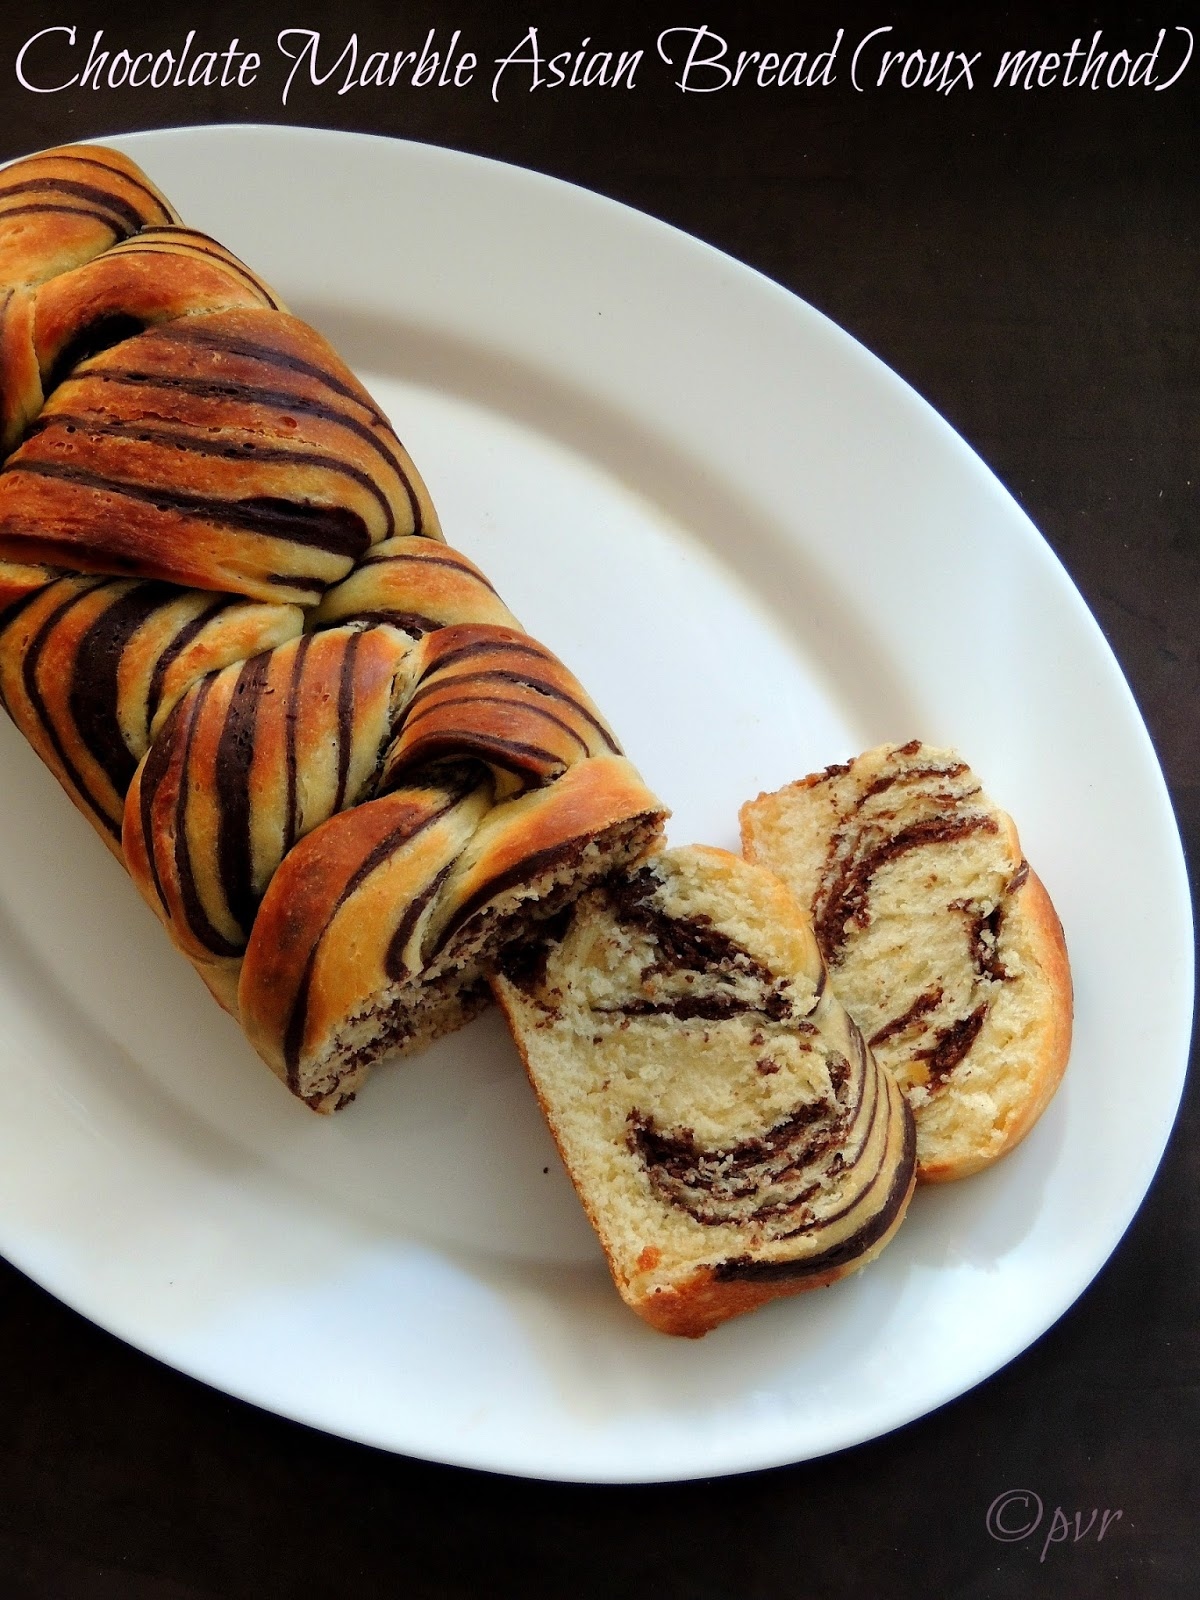 Chocolate Marble Asian Bread Roux Method Home Baker S